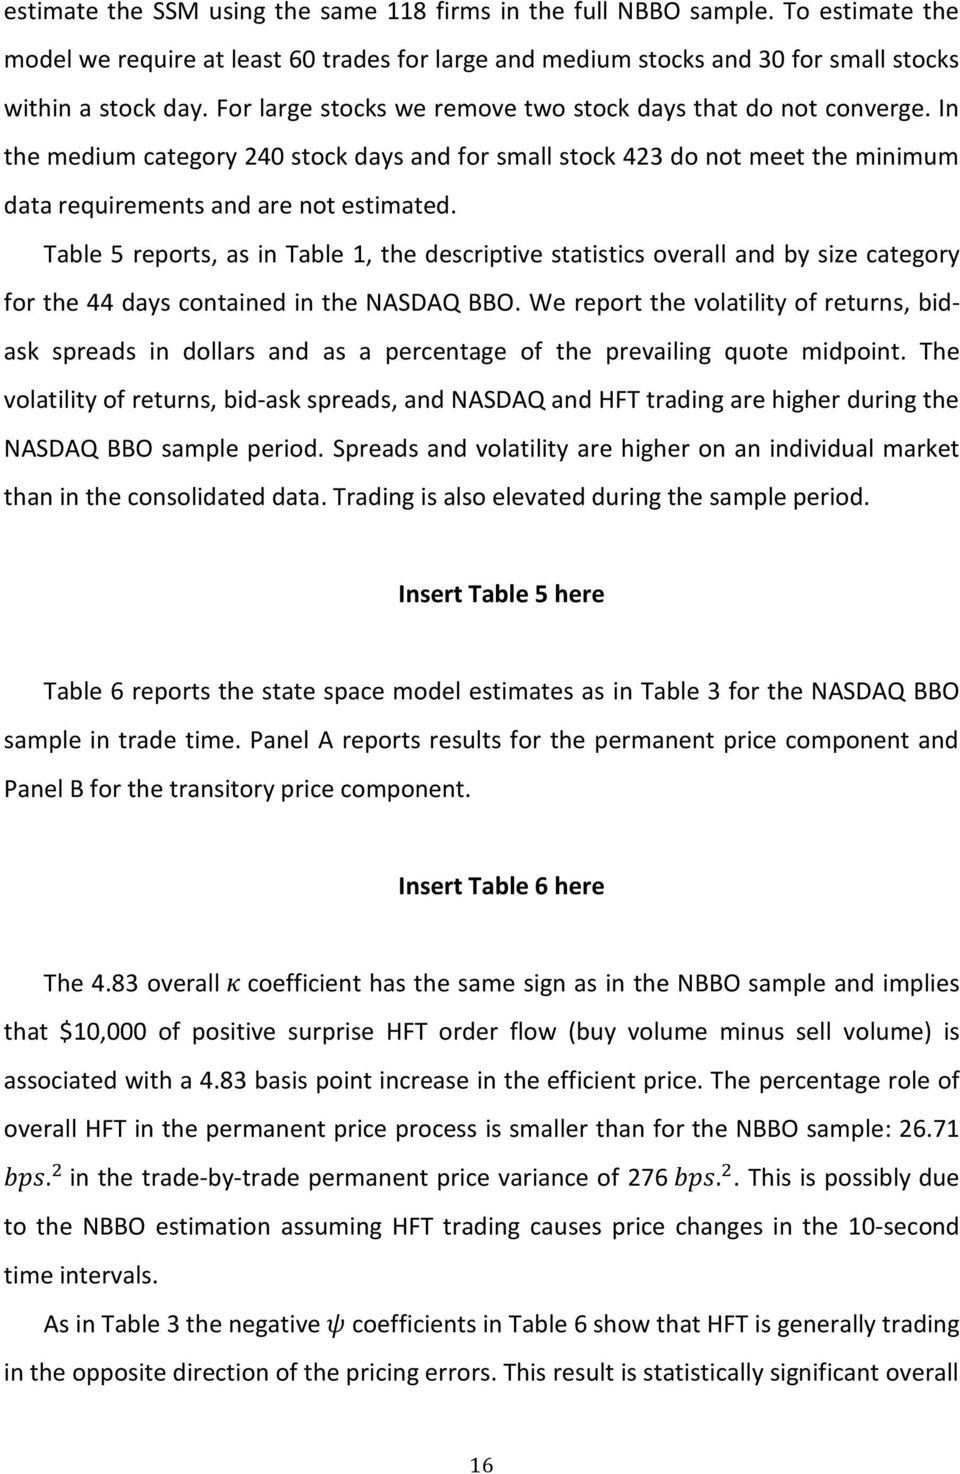 Table 5 reports, as in Table 1, the descriptive statistics overall and by size category for the 44 days contained in the NASDAQ BBO.